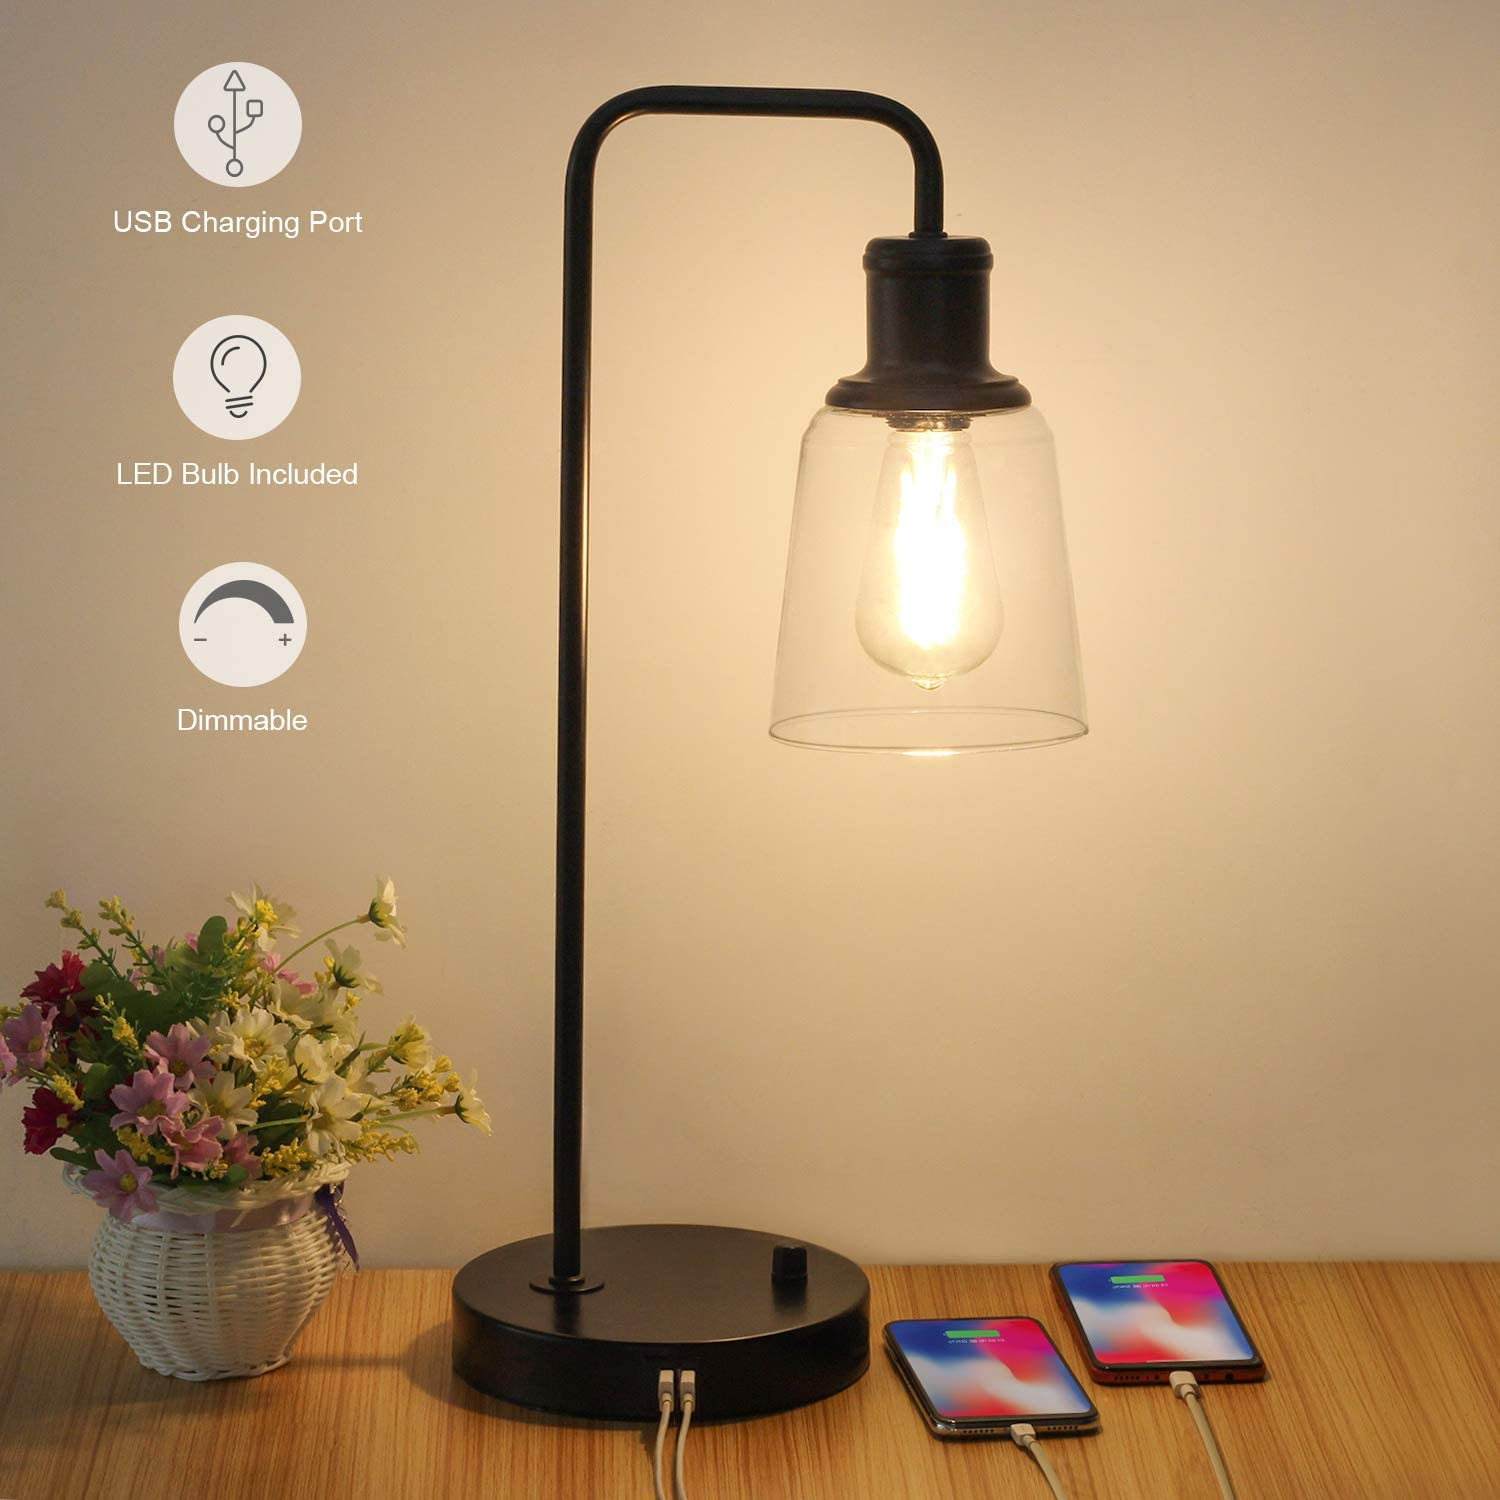 Glass Shade Desk Reading Lamp for Farmhouse Bedroom Living Room LED Edison Bulb Included 3 Way Dimmable Vintage Bedside Nightstand Lamp Dual USB Charging Ports Industrial Touch Control Table Lamp